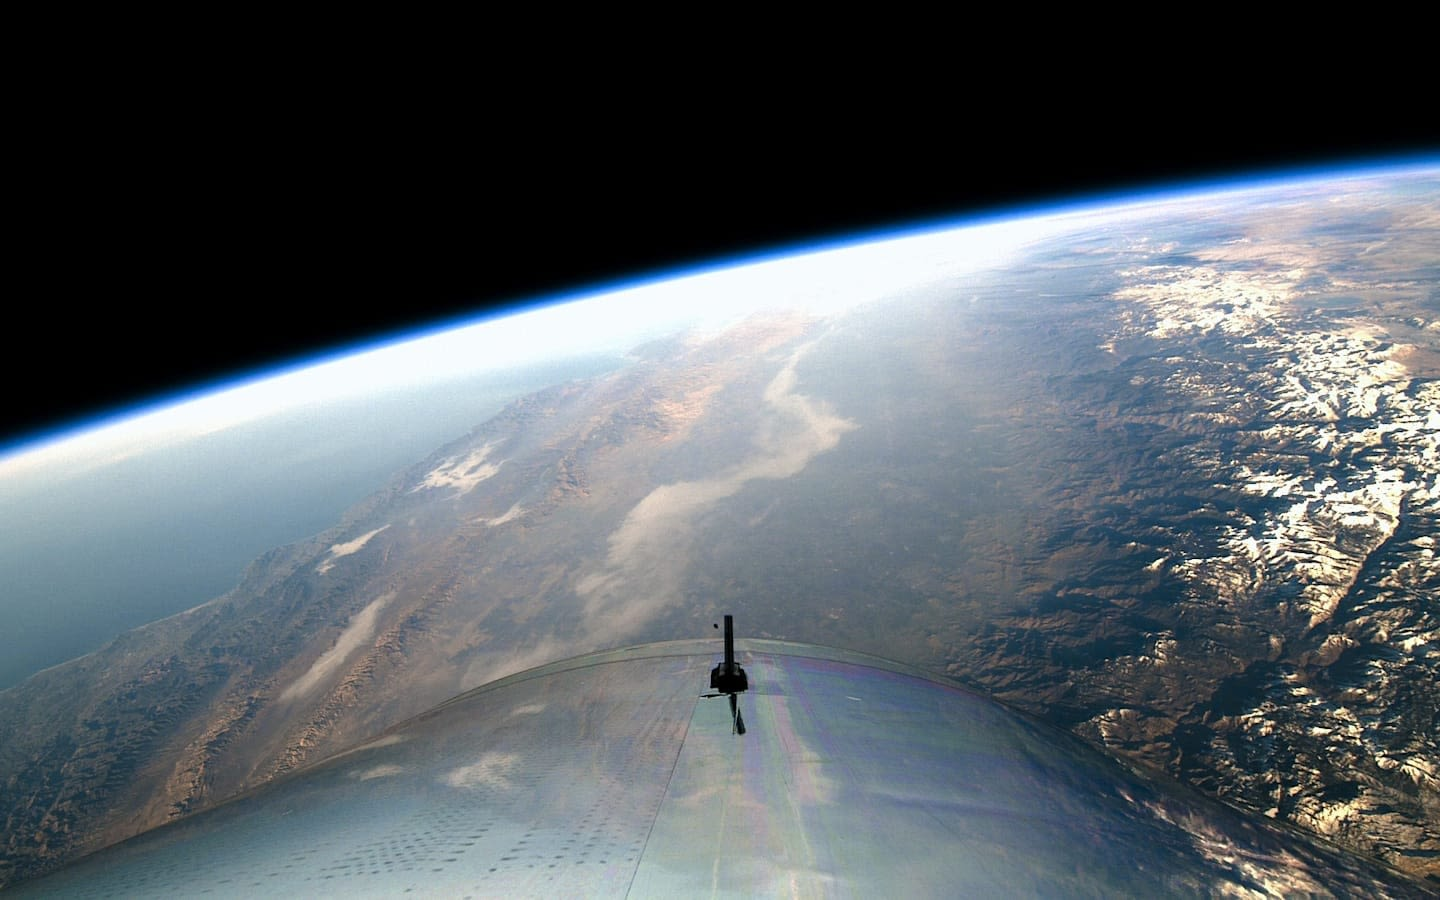 View of Earth from VSS Unity during its first spaceflight